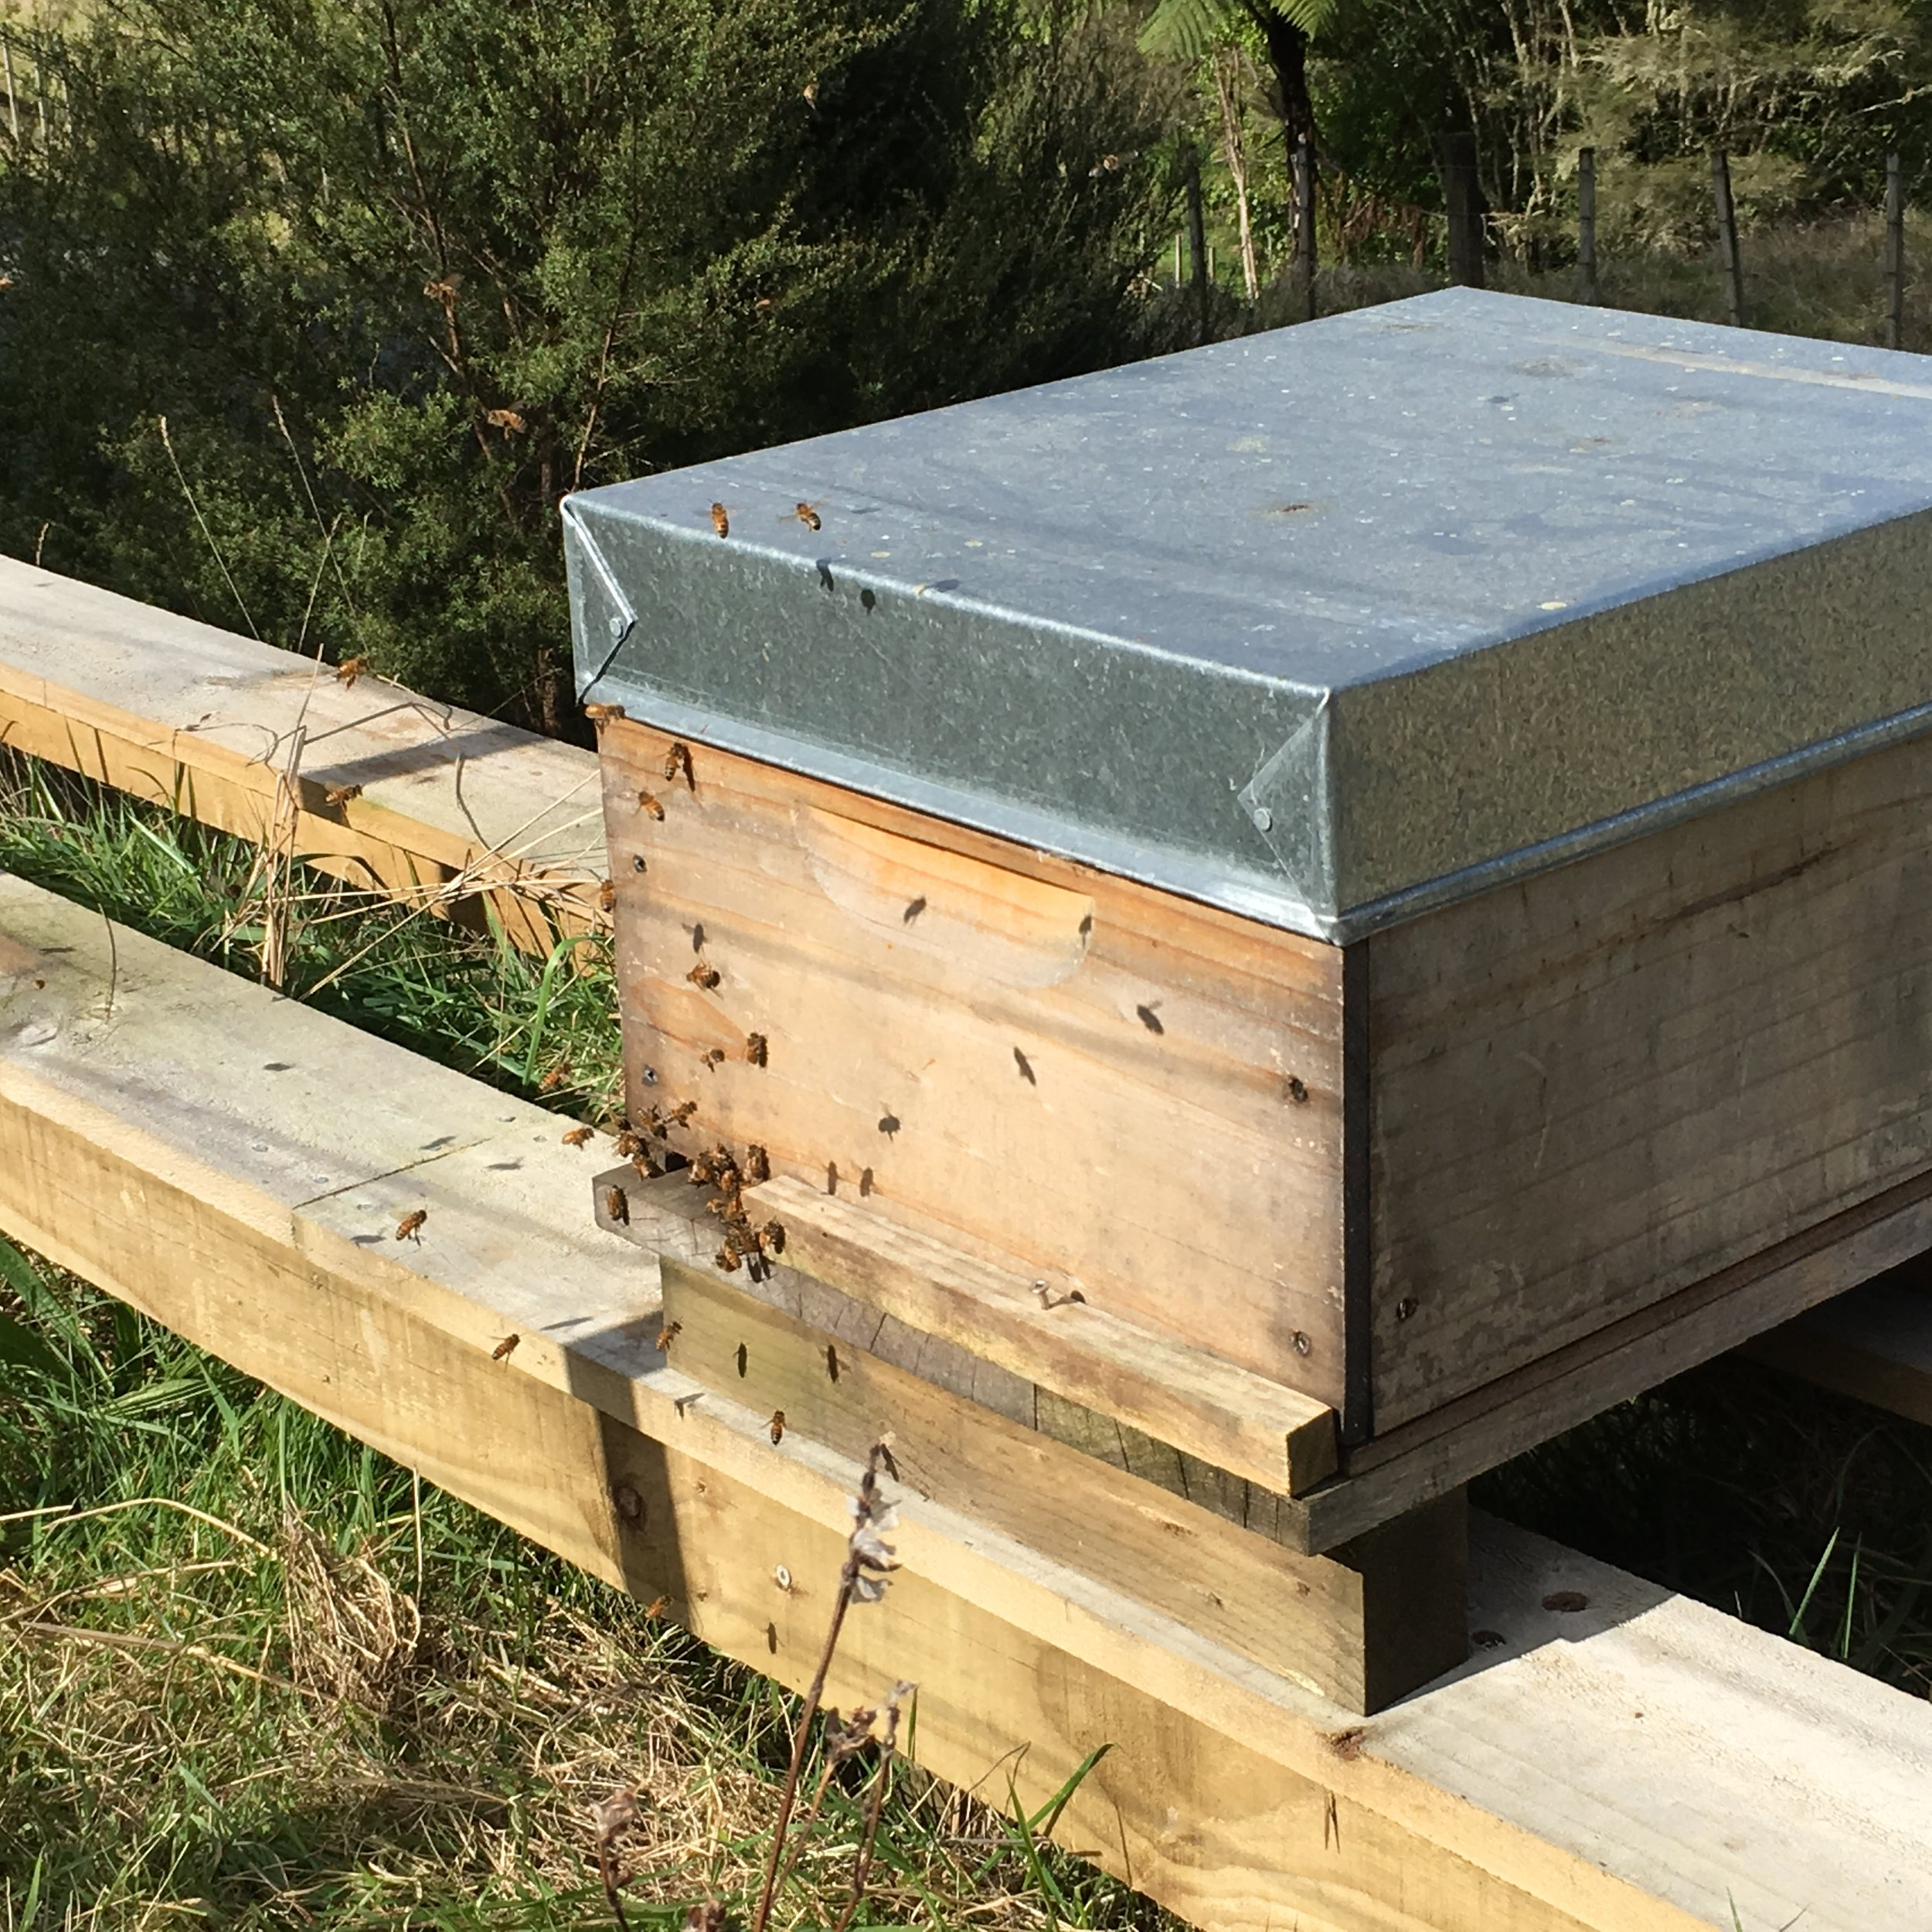 Bees coming out in early spring